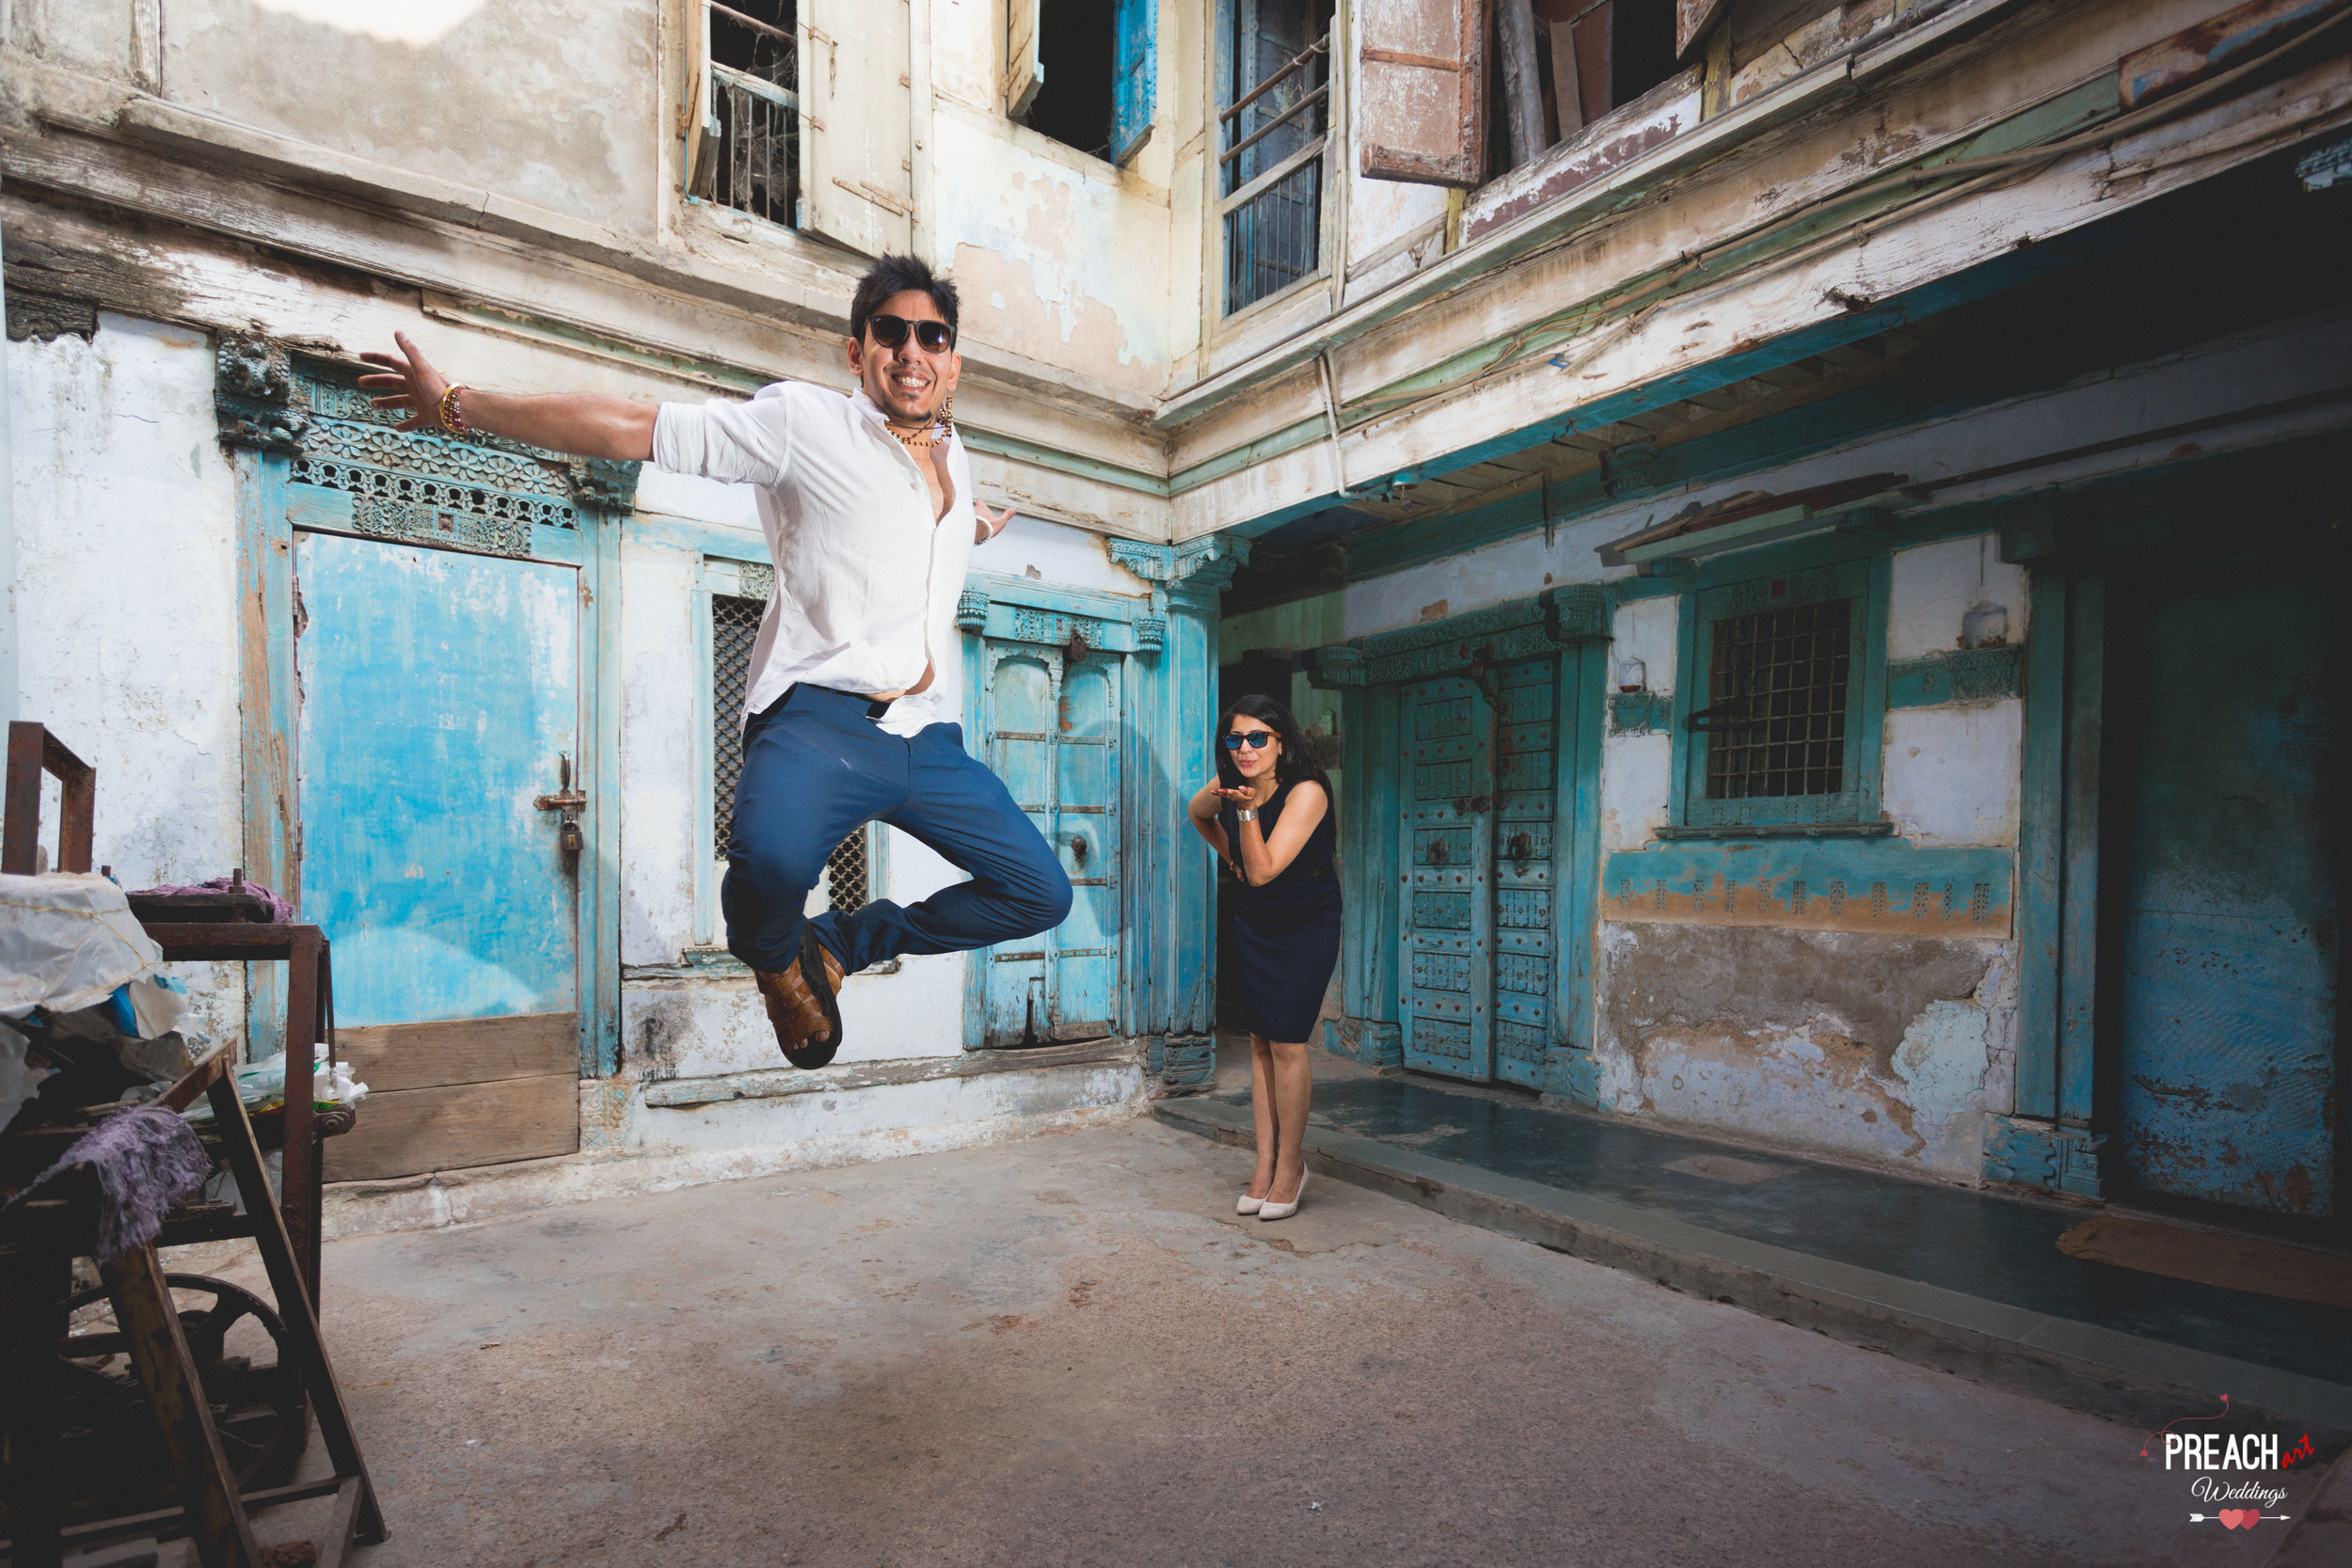 V&M_PRE-WEDDING SHOOT_AHMEDABAD OLD CITY_PREACH ART-22.jpg